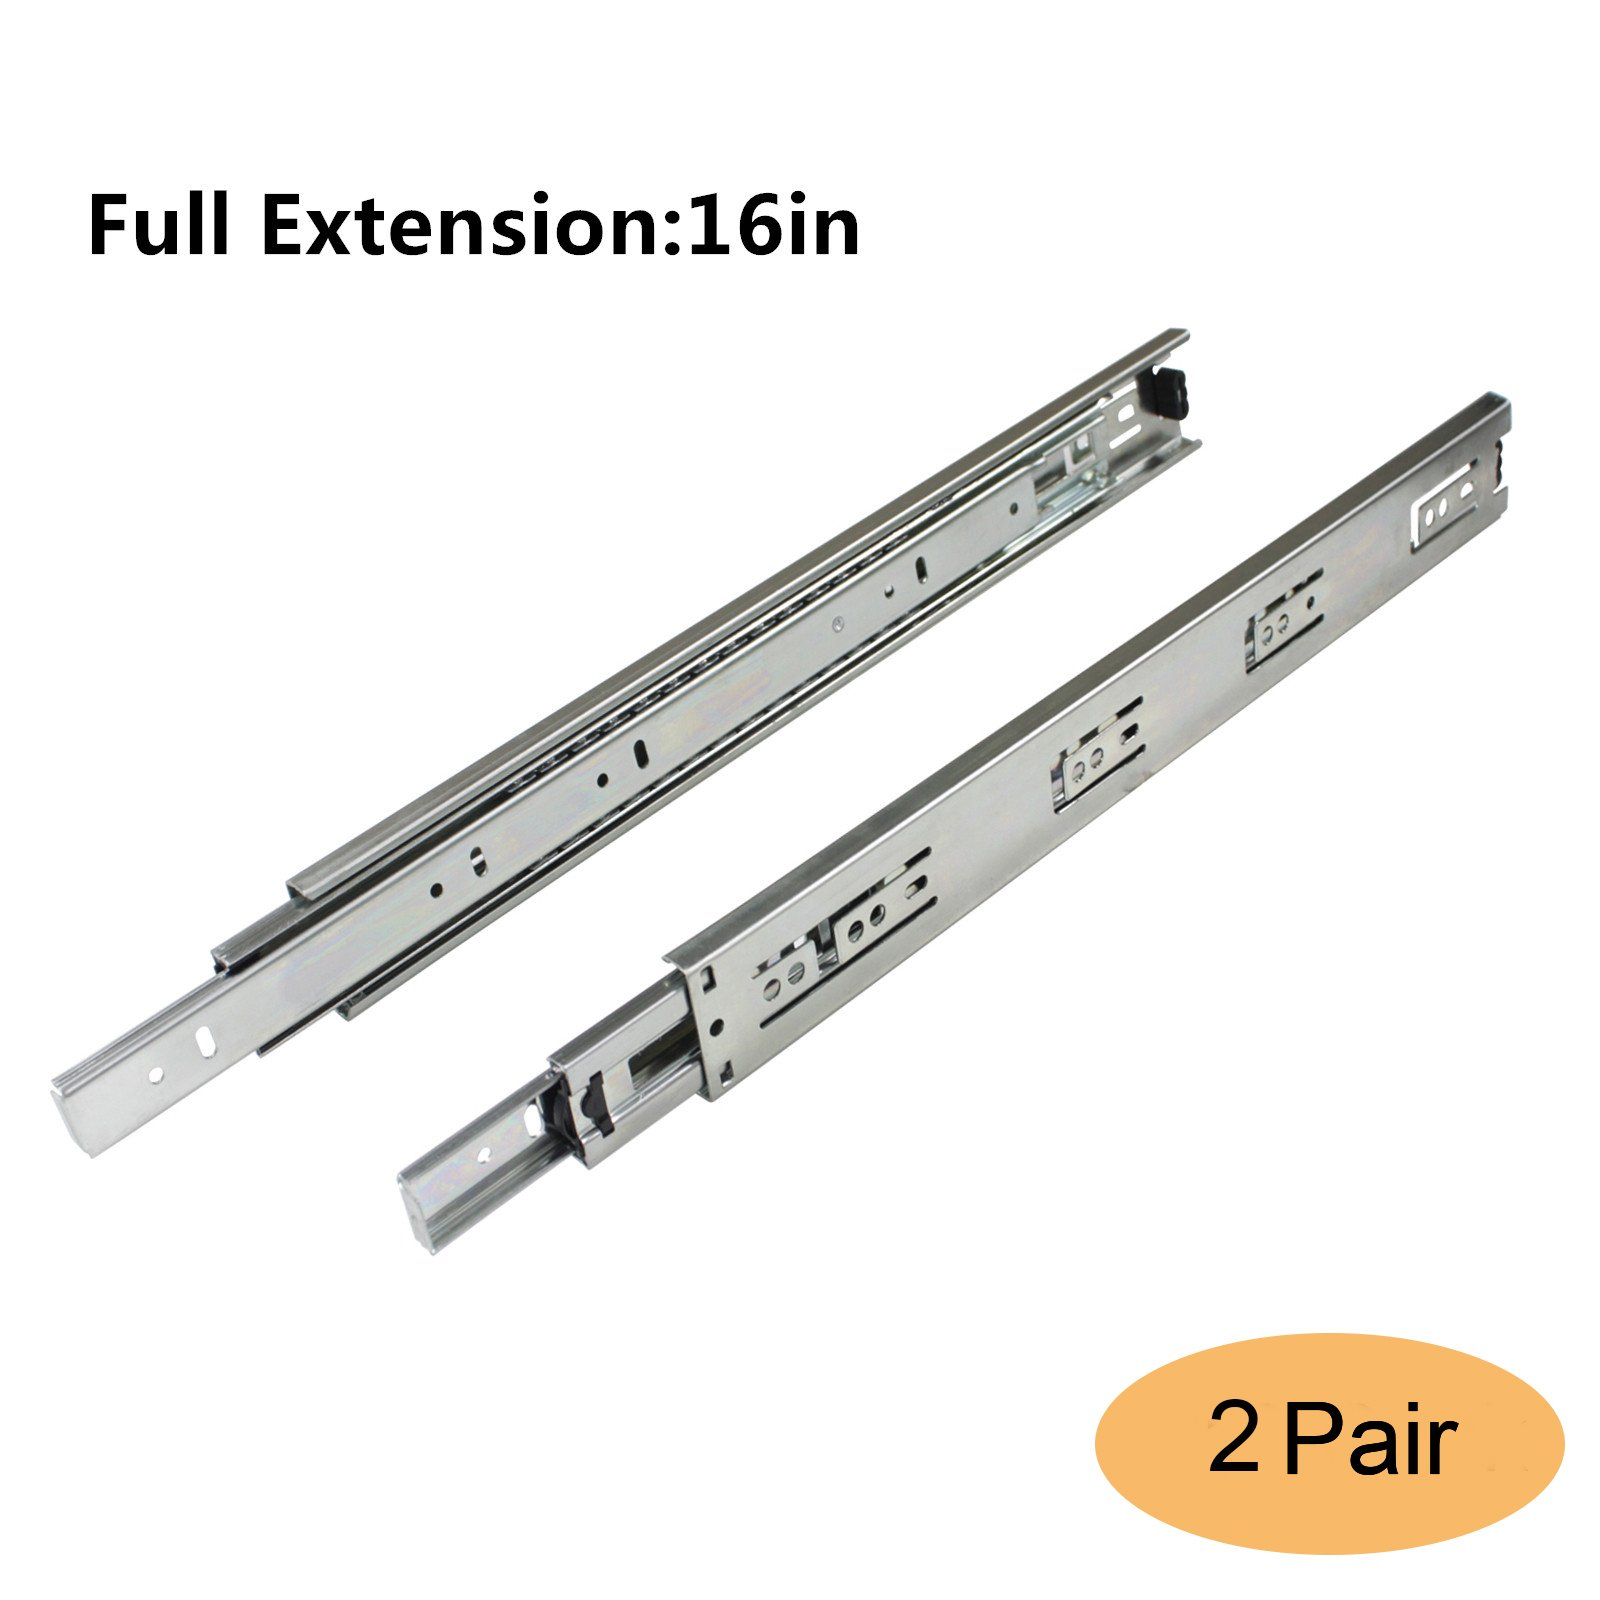 Gobrico Drawer Slides Duty Full Extension 16in Ball Bearing 3Folds Side Mount Furniture Glides Runners Hardware 2Pair by Gobrico